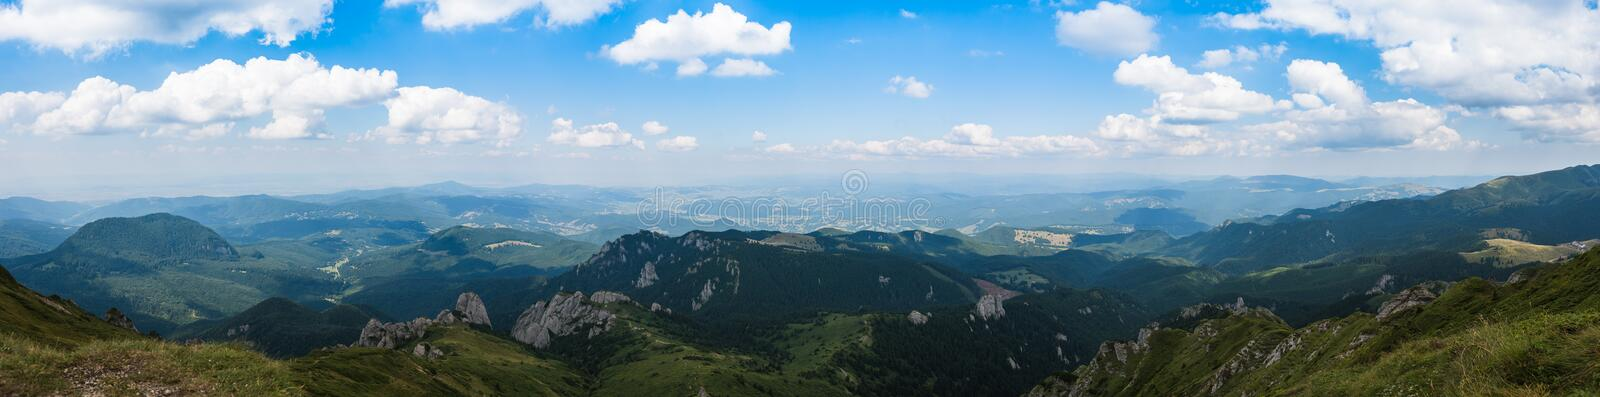 Panorama of Ciucas Mountains, Romania, a sunny summer day, blue sky and beautiful clouds royalty free stock image